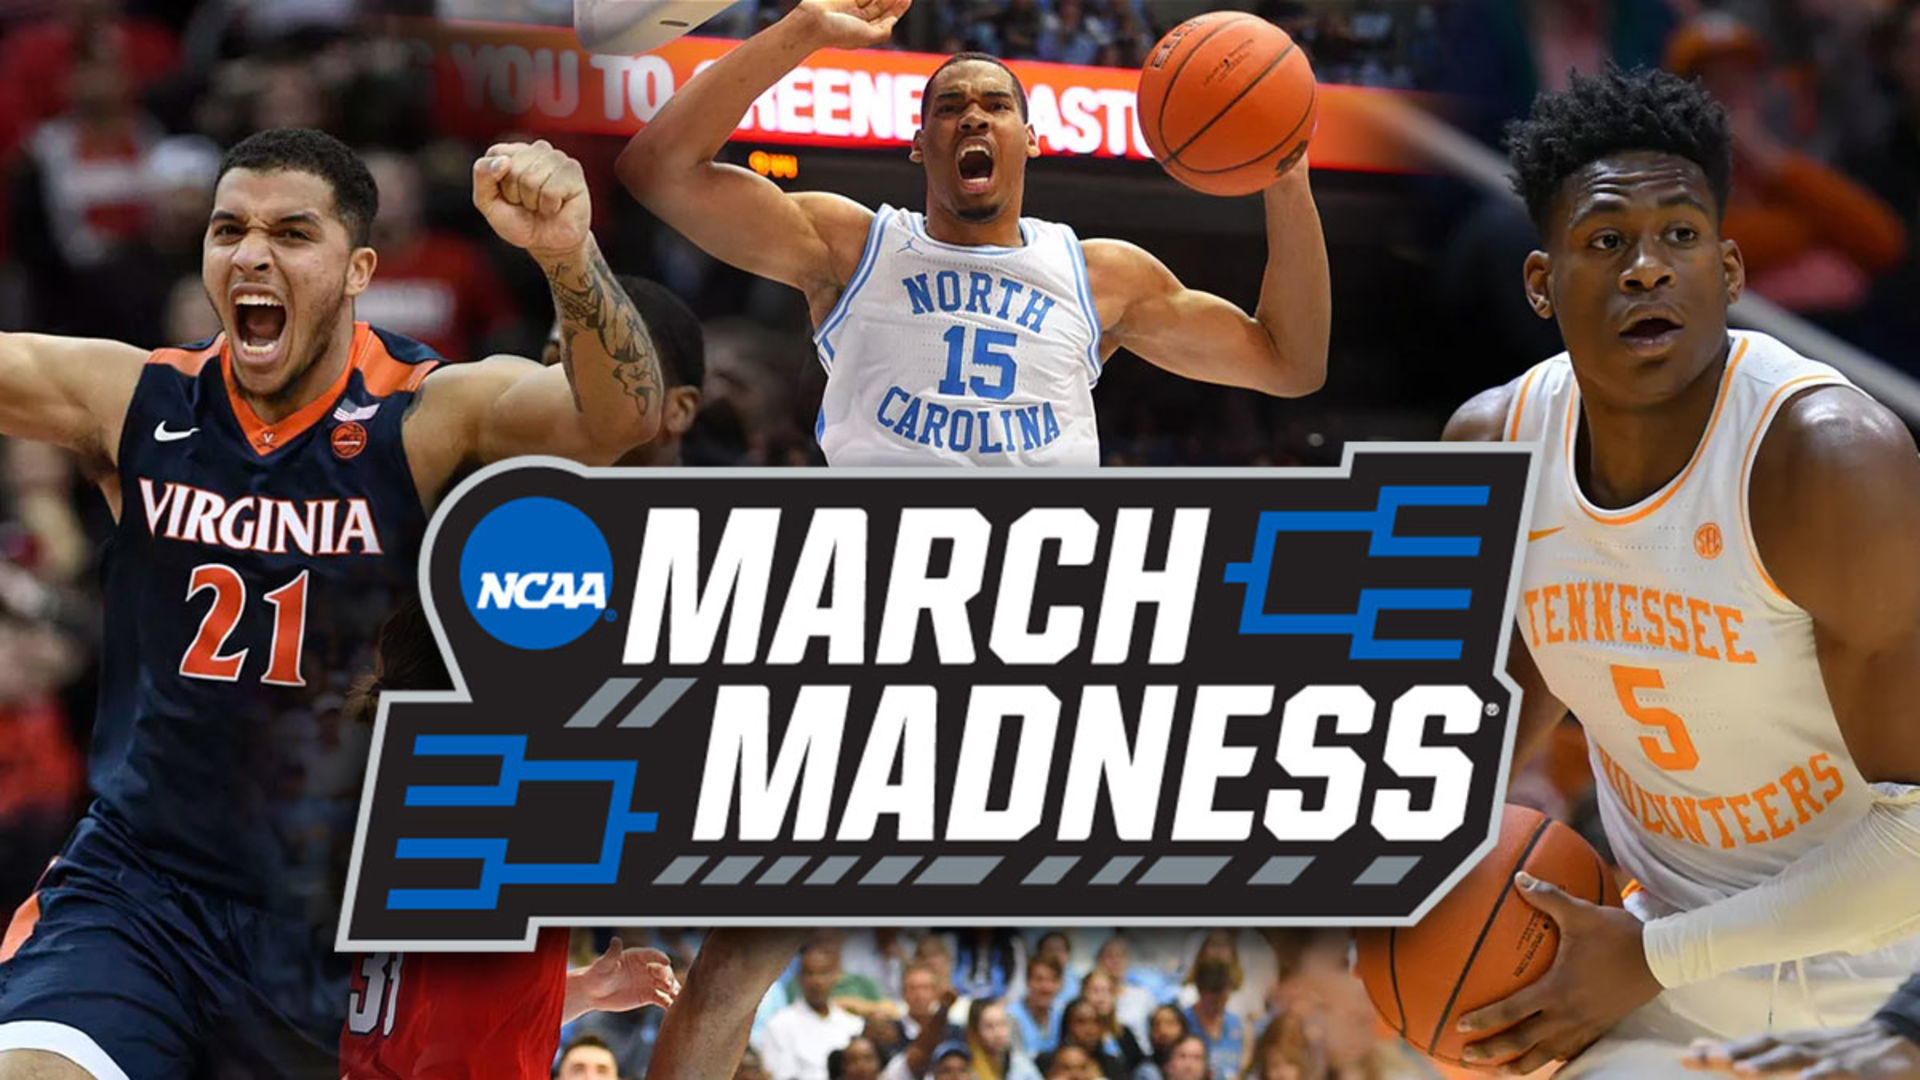 March Madness – Ultimate Bracket Challenge 2019